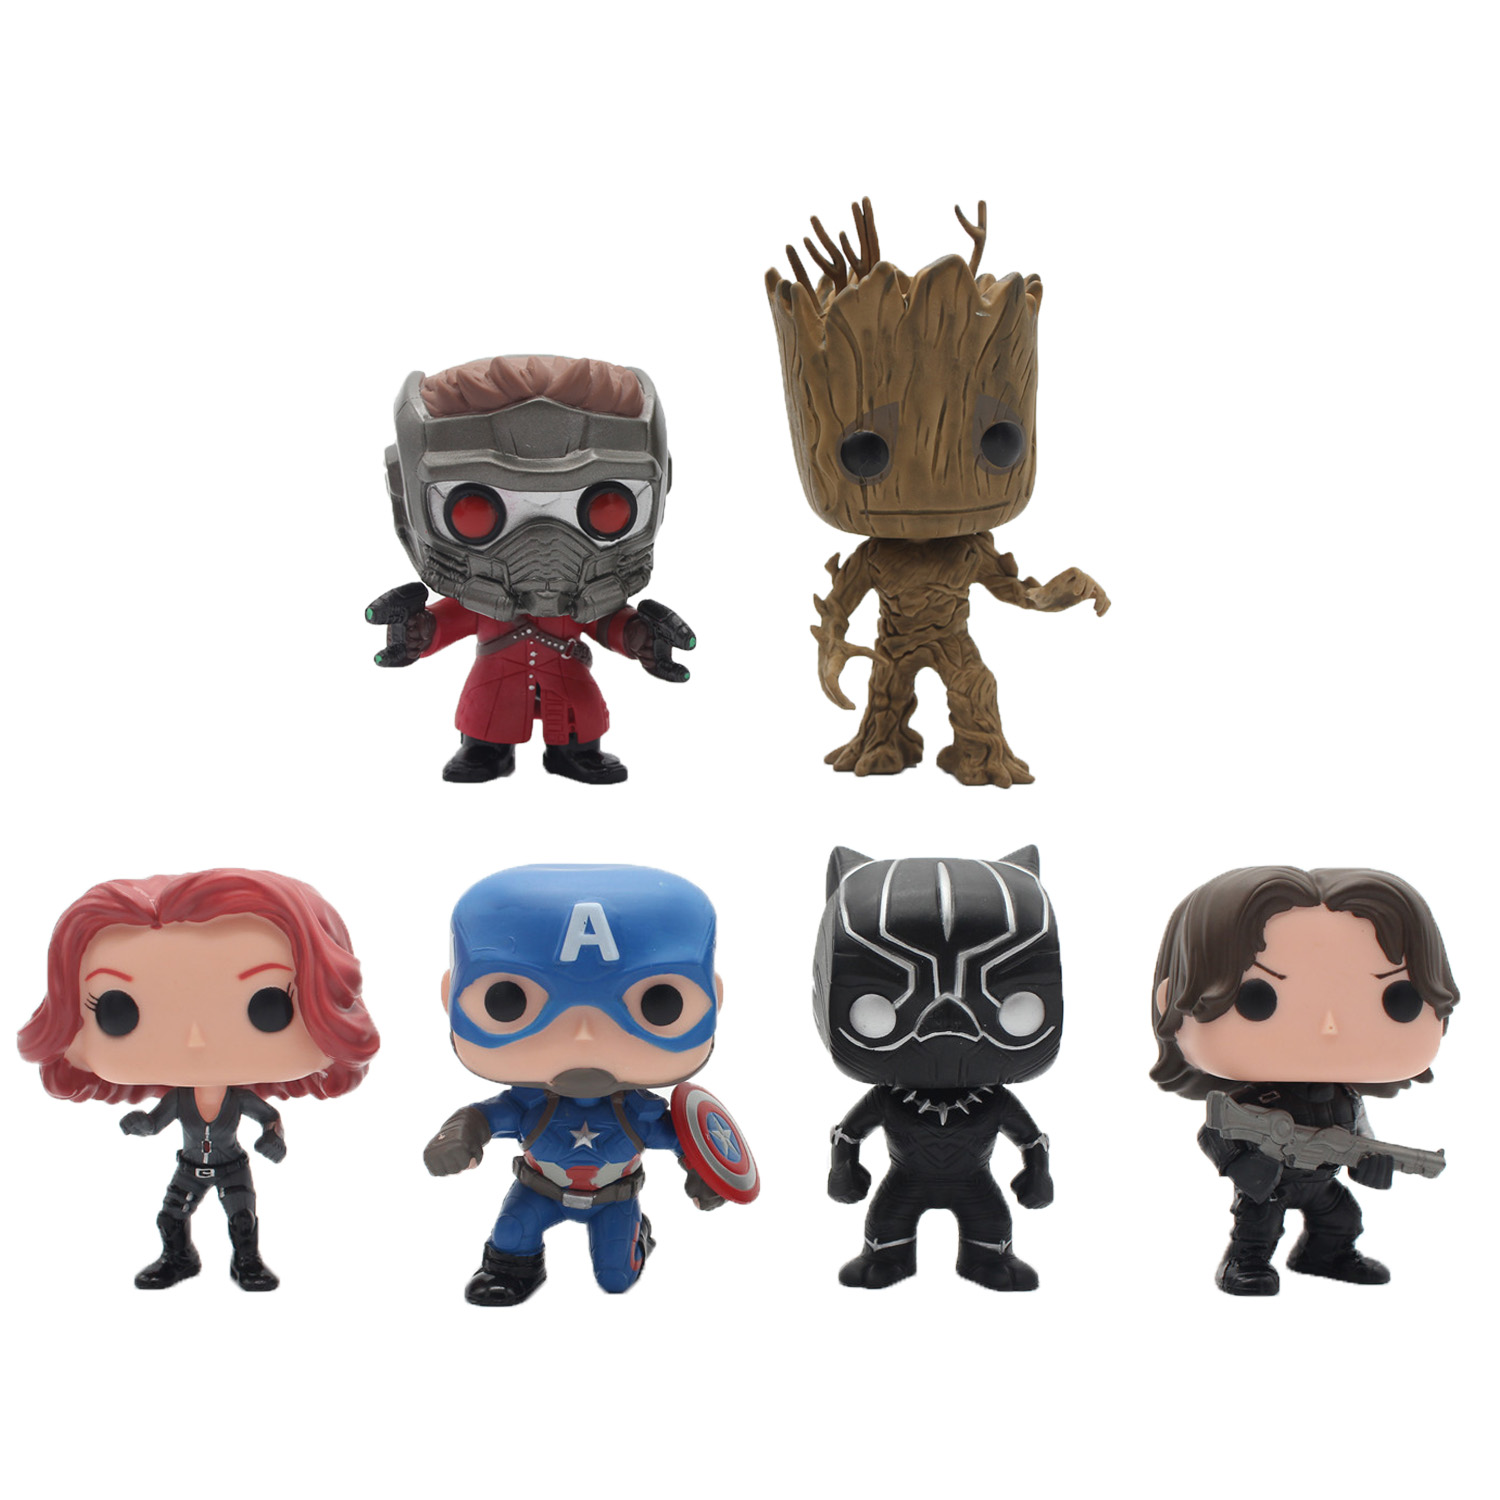 Chanycore Funko pop Groot Guardians of the Galaxy Avengers Captain America Black Widow Panther Winter Soldier Vinyl figure toy(China (Mainland))